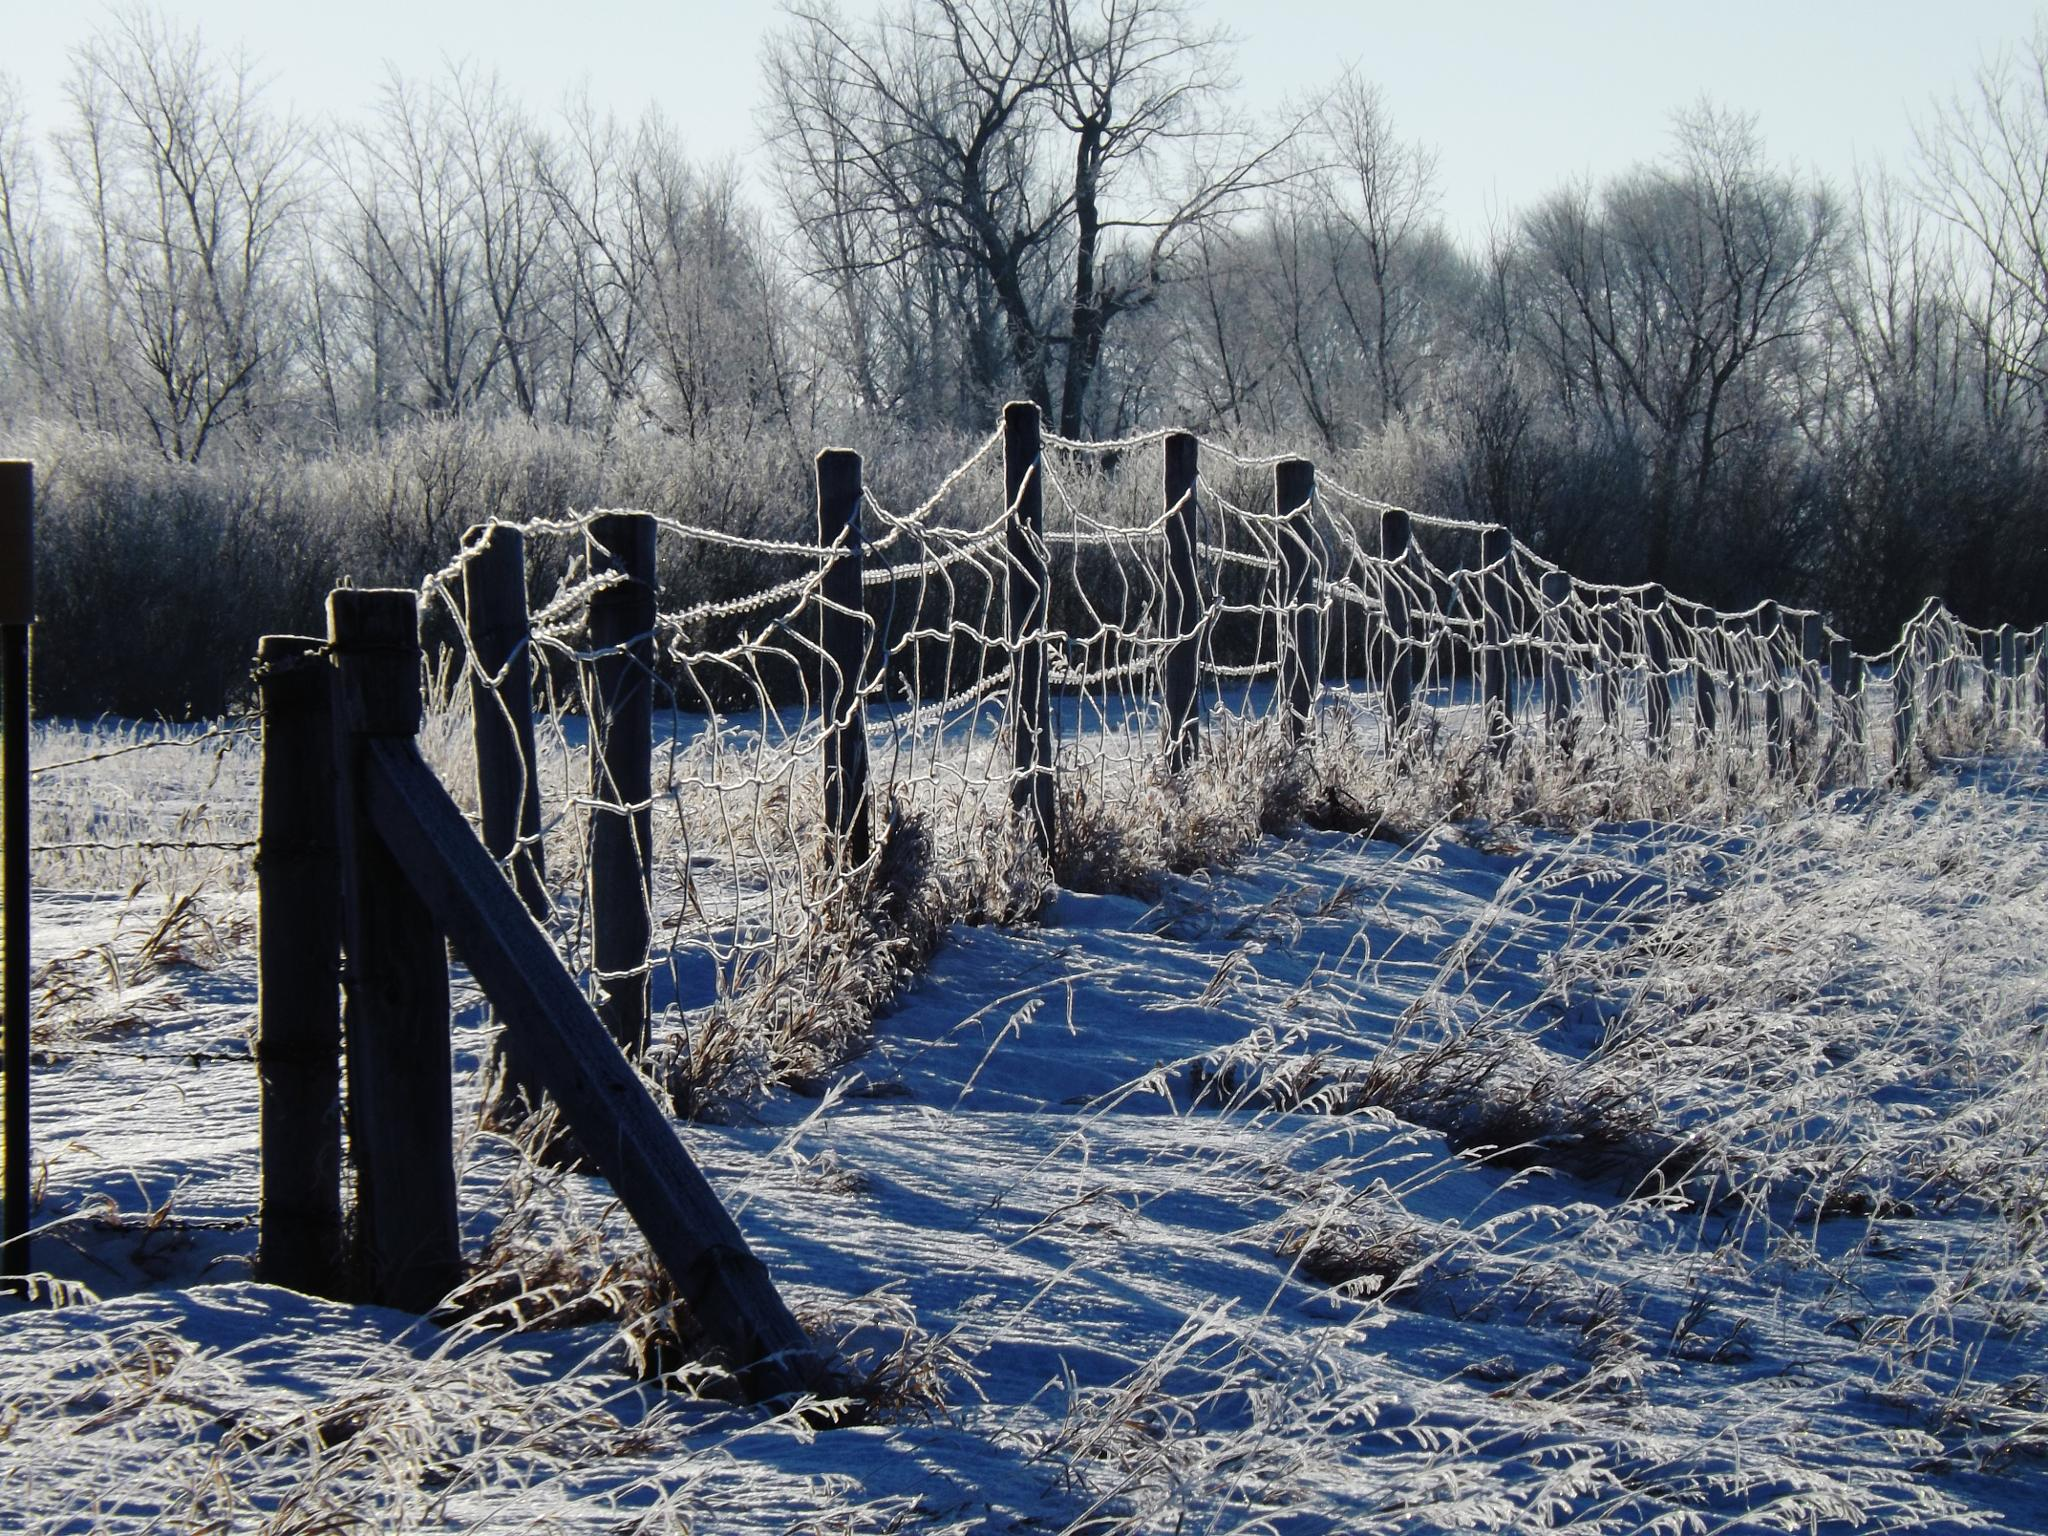 frost line- what my third eye saw by Rhyland Cottingham